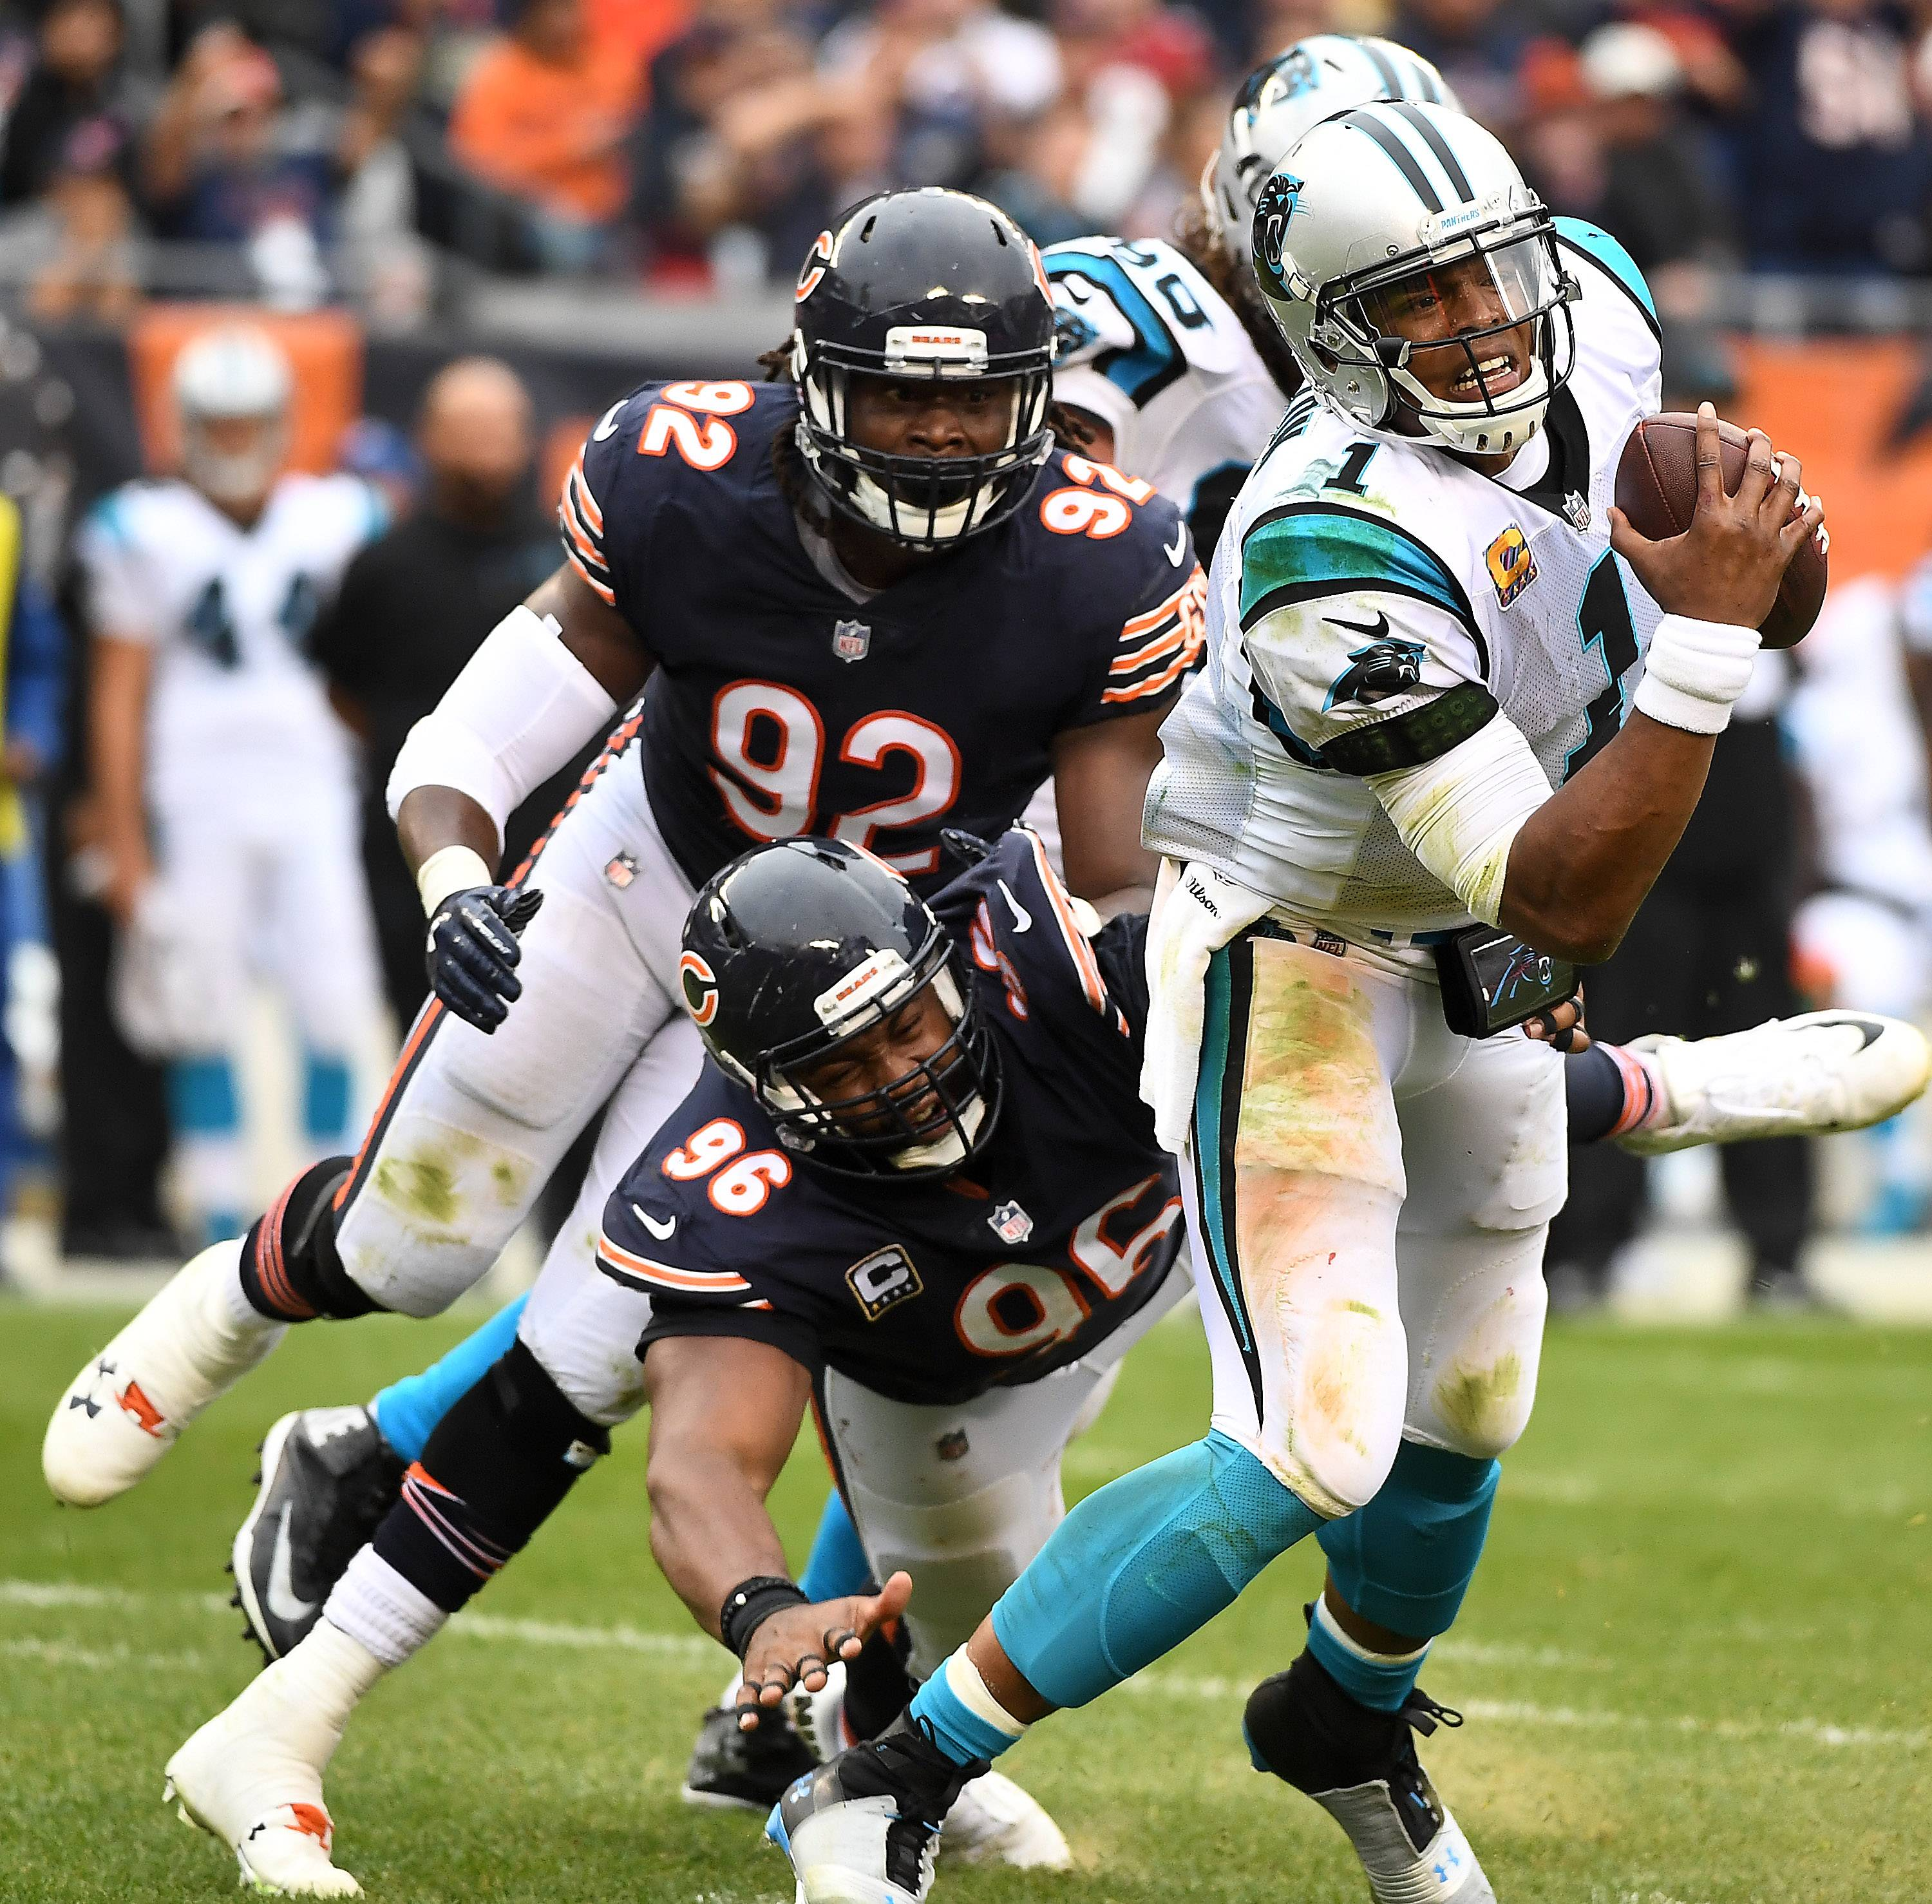 Rick West/rwest@dailyherald.com Chicago Bears defensive end Akiem Hicks (96) and outside linebacker Pernell McPhee (92) close in on Carolina Panthers quarterback Cam Newton (1) during Sunday's game at Soldier Field in Chicago.